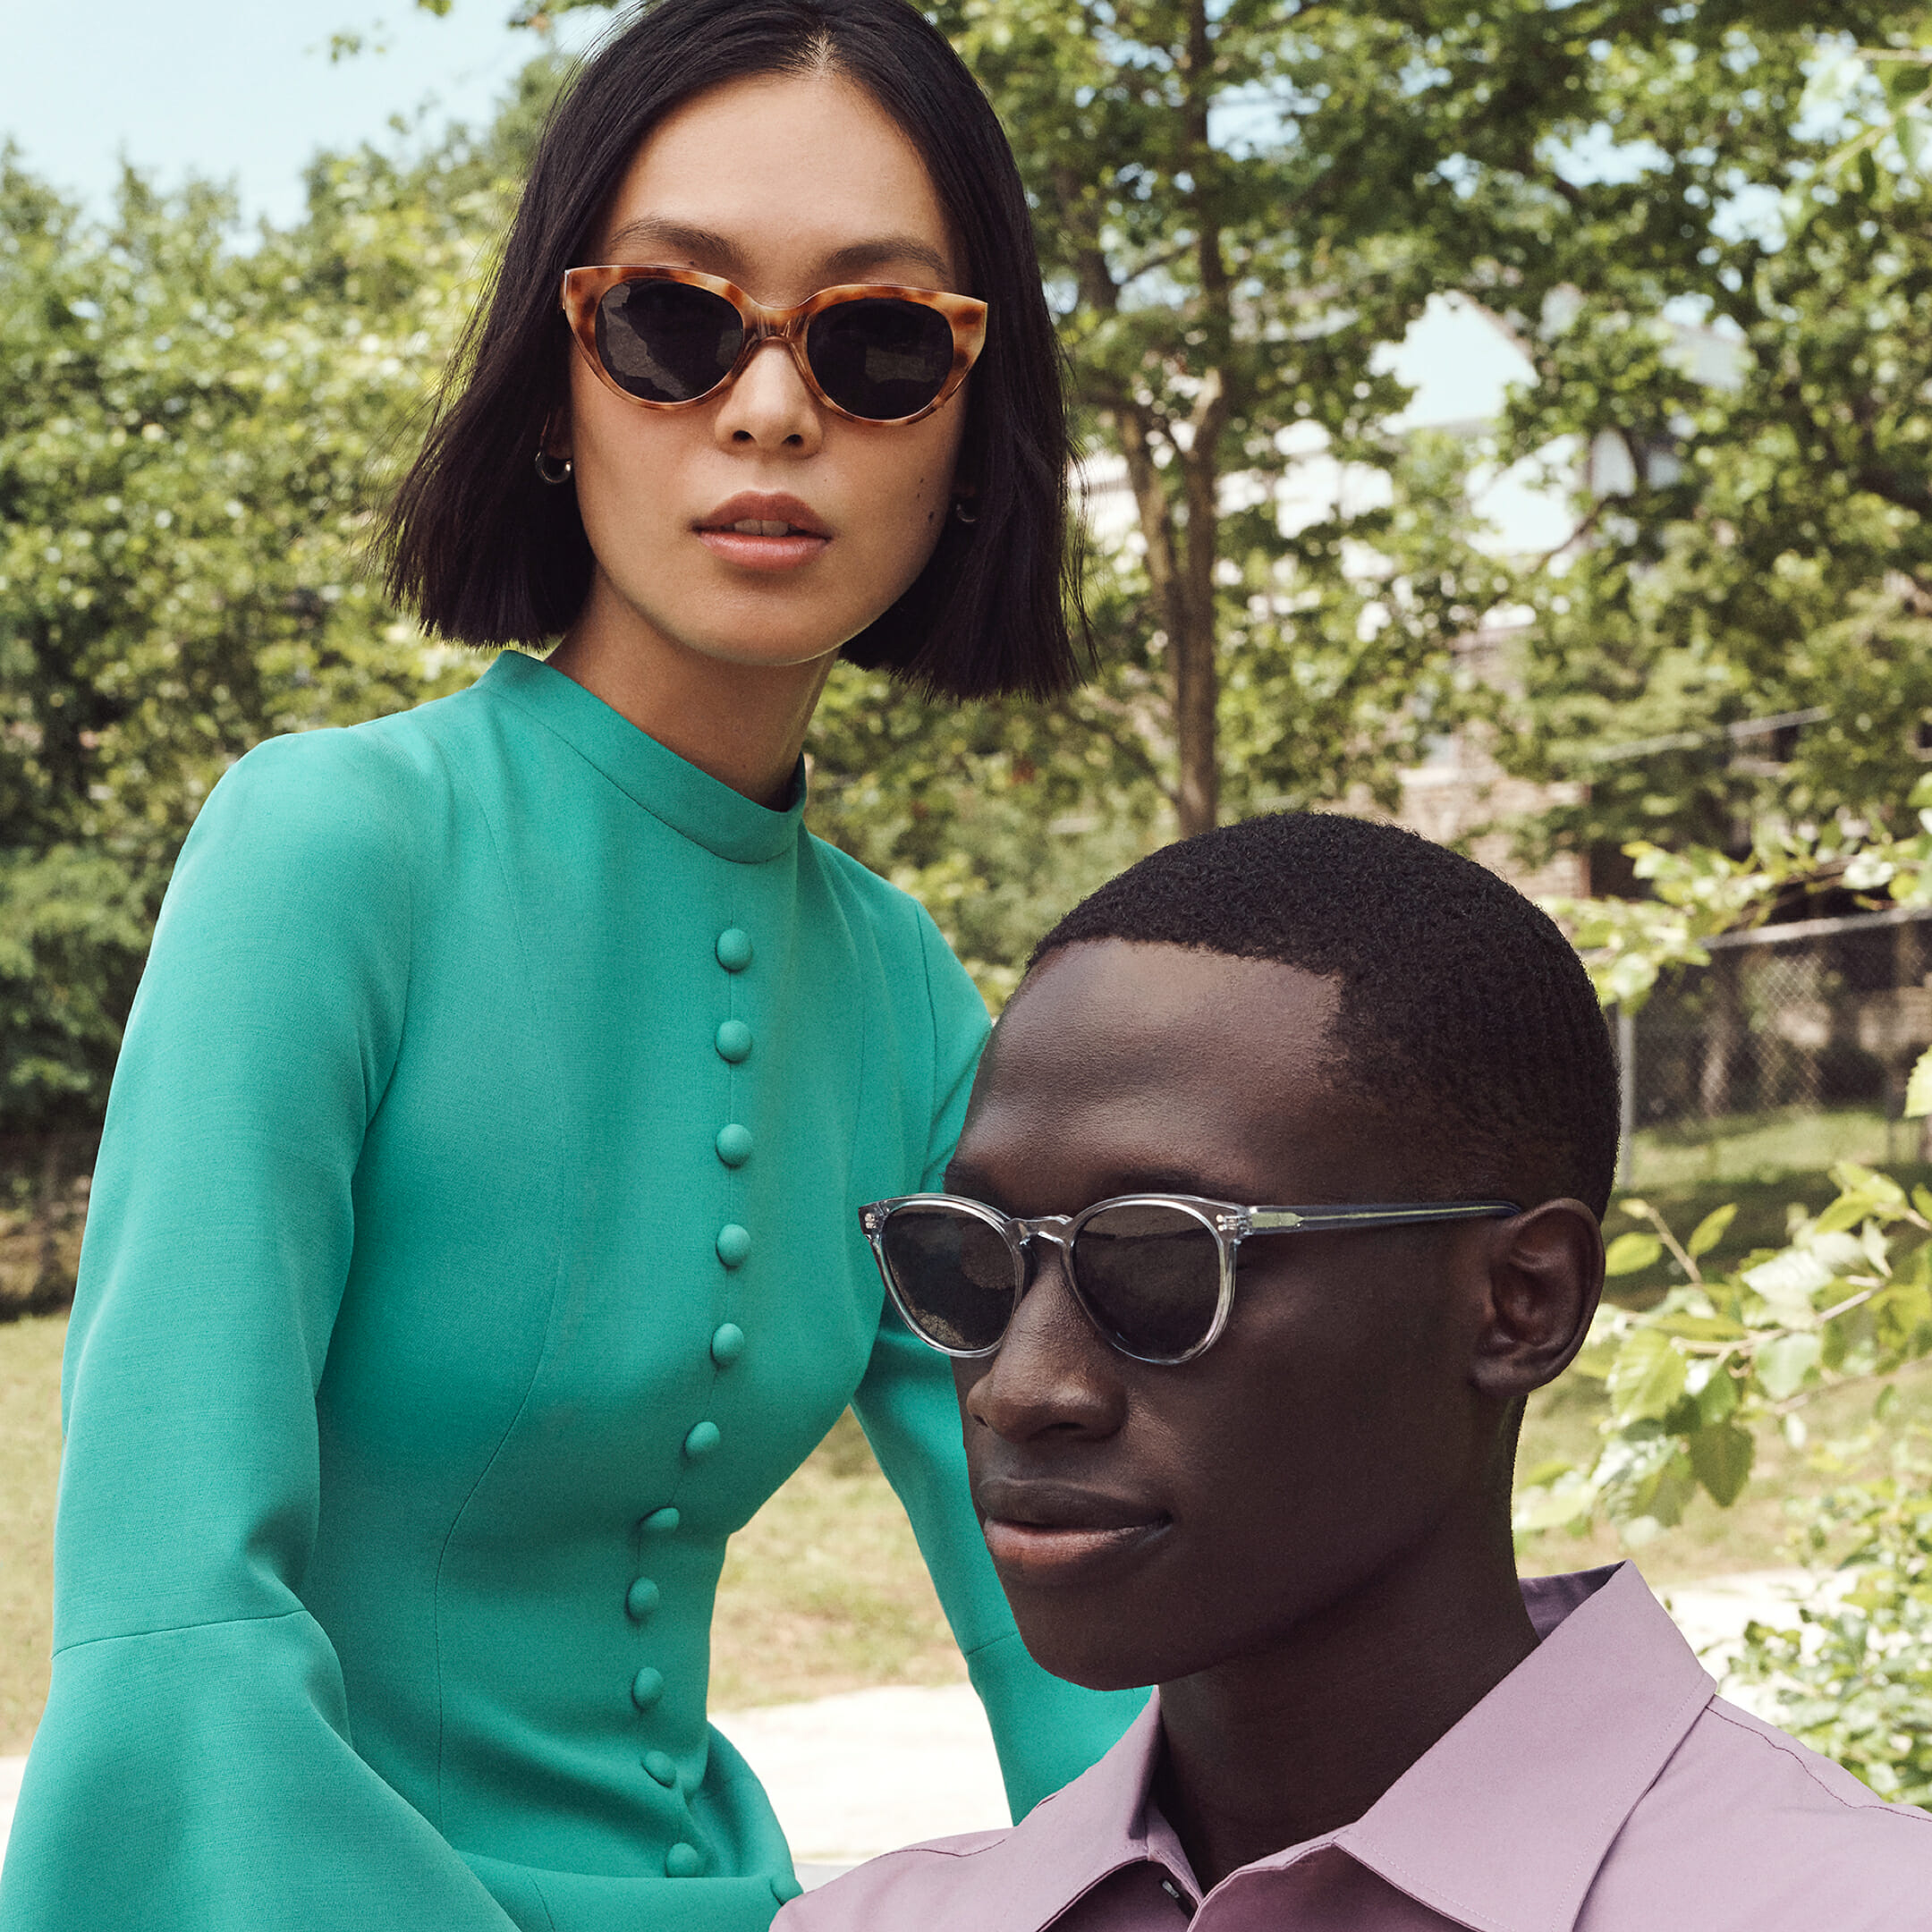 A woman and a man wearing Warby Parker glasses.